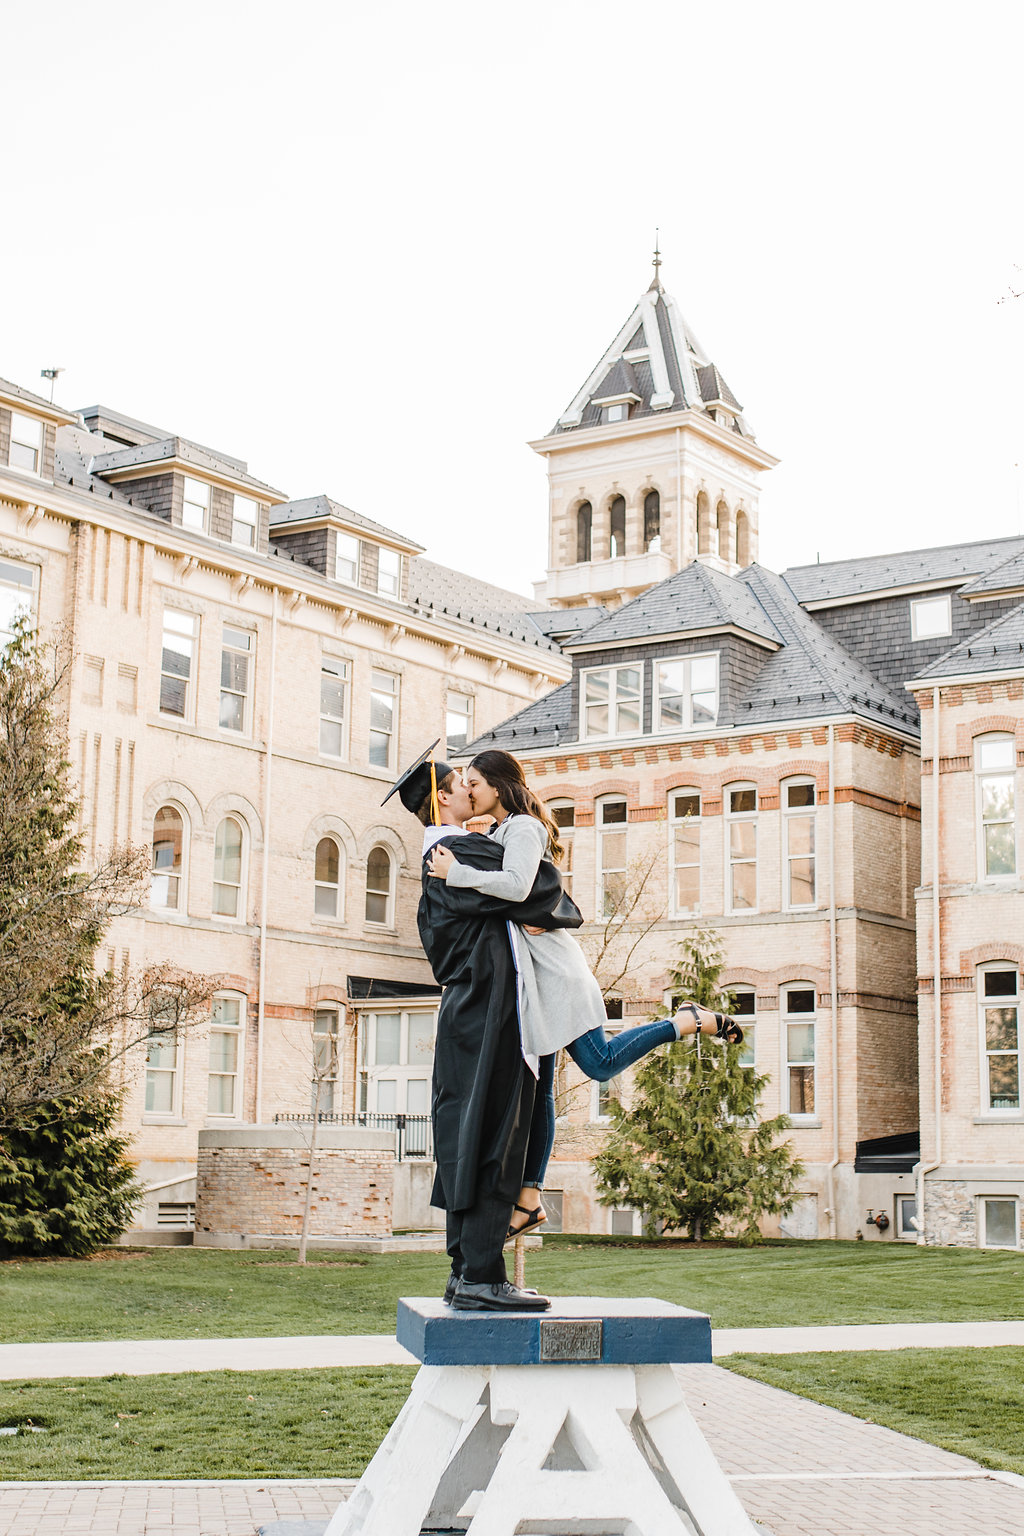 couples graduation hug utah state university logan utah cache valley on the A old main